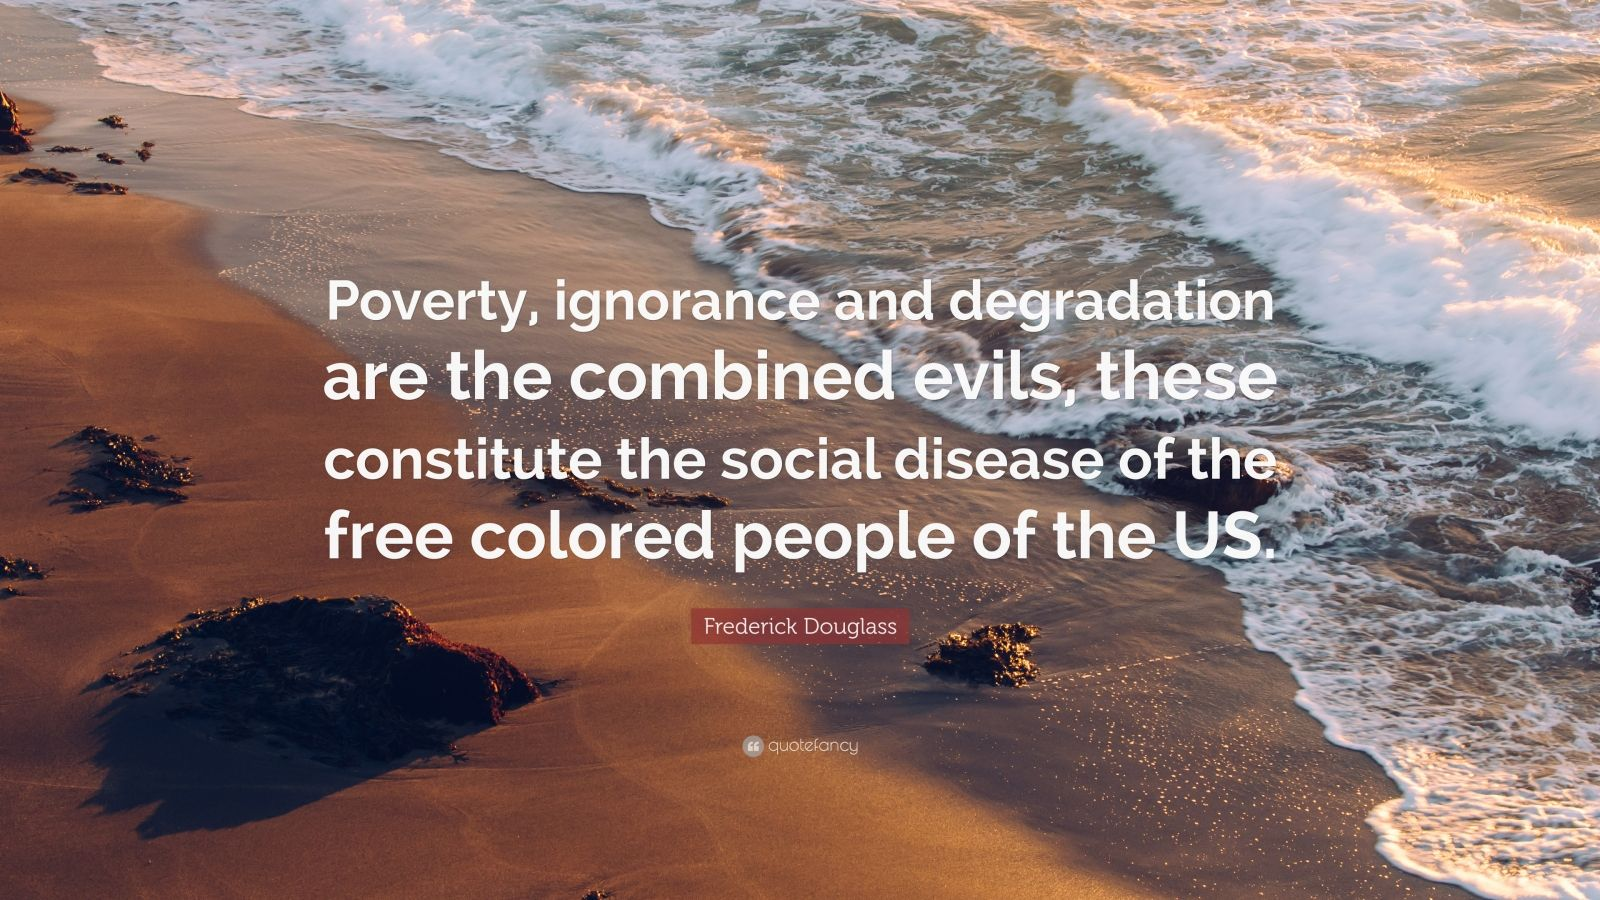 """Frederick Douglass Quote: """"Poverty, ignorance and degradation are the combined evils, these constitute the social disease of the free colored people of the US."""""""